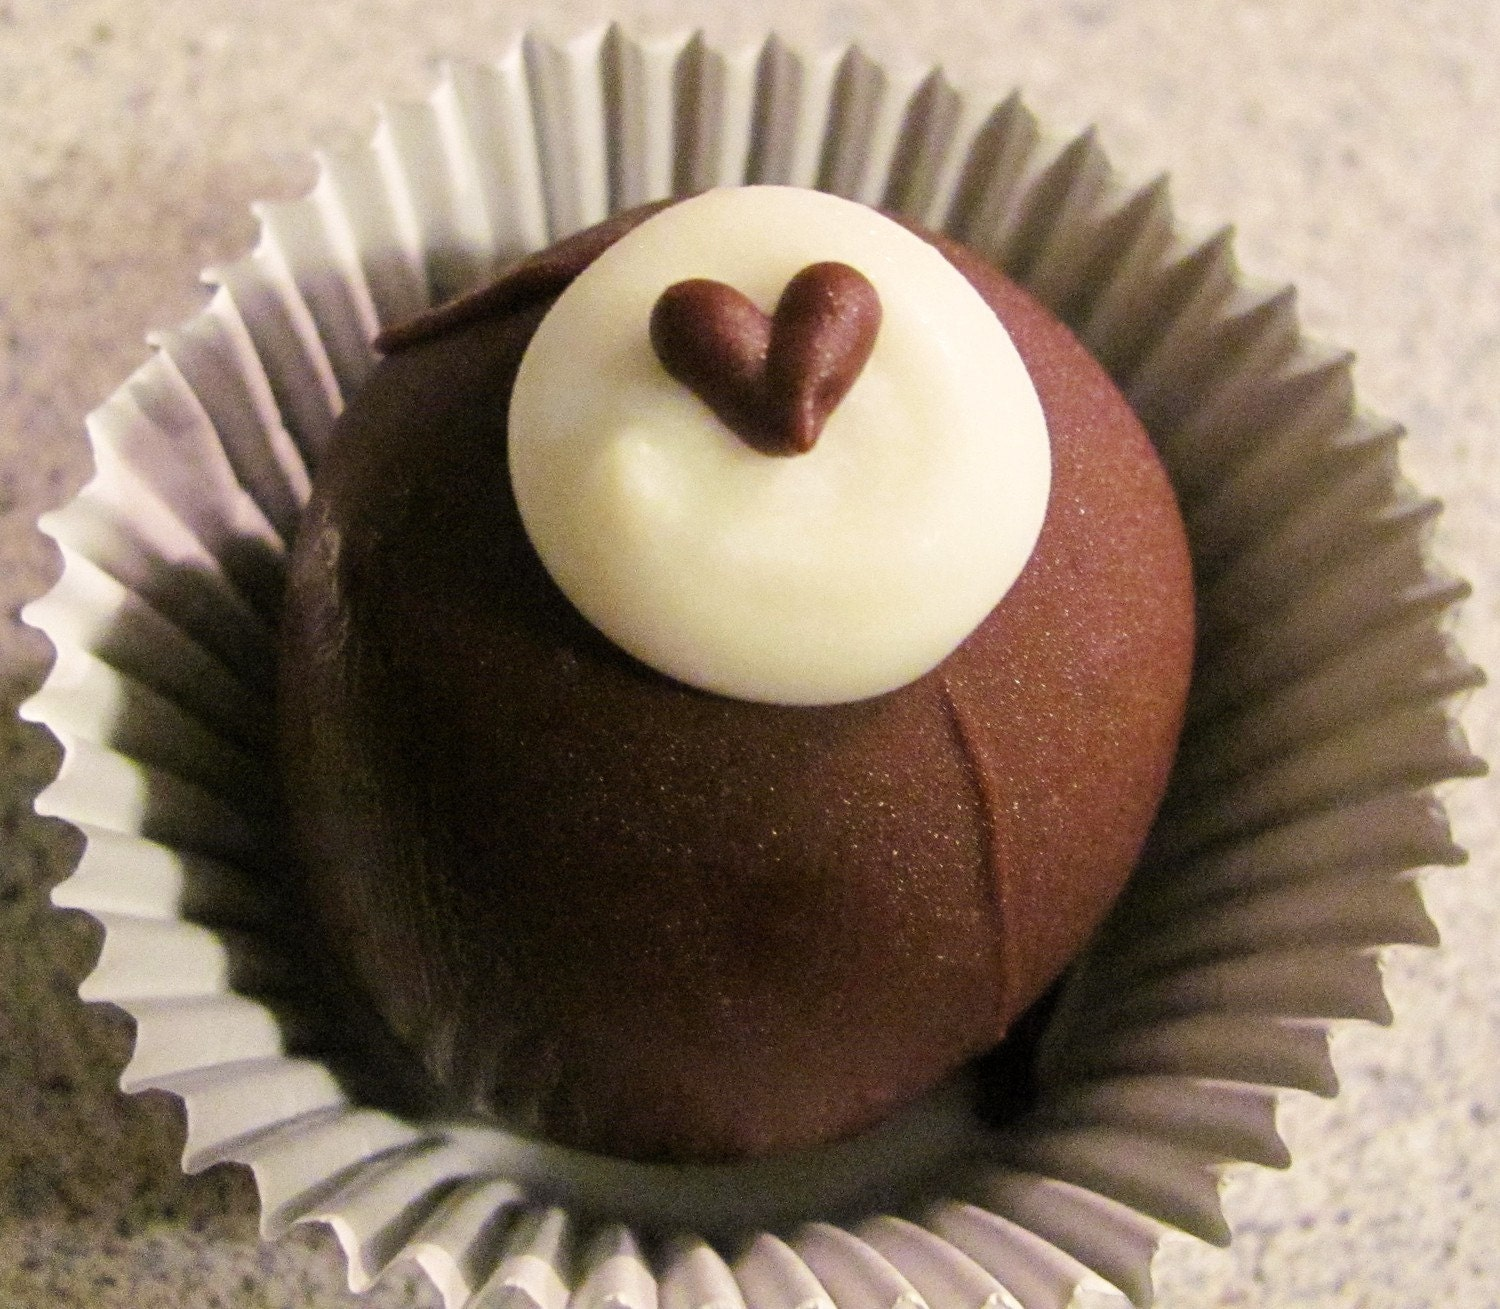 Tuxedo Chocolate Fudge Bon Bons with Hearts